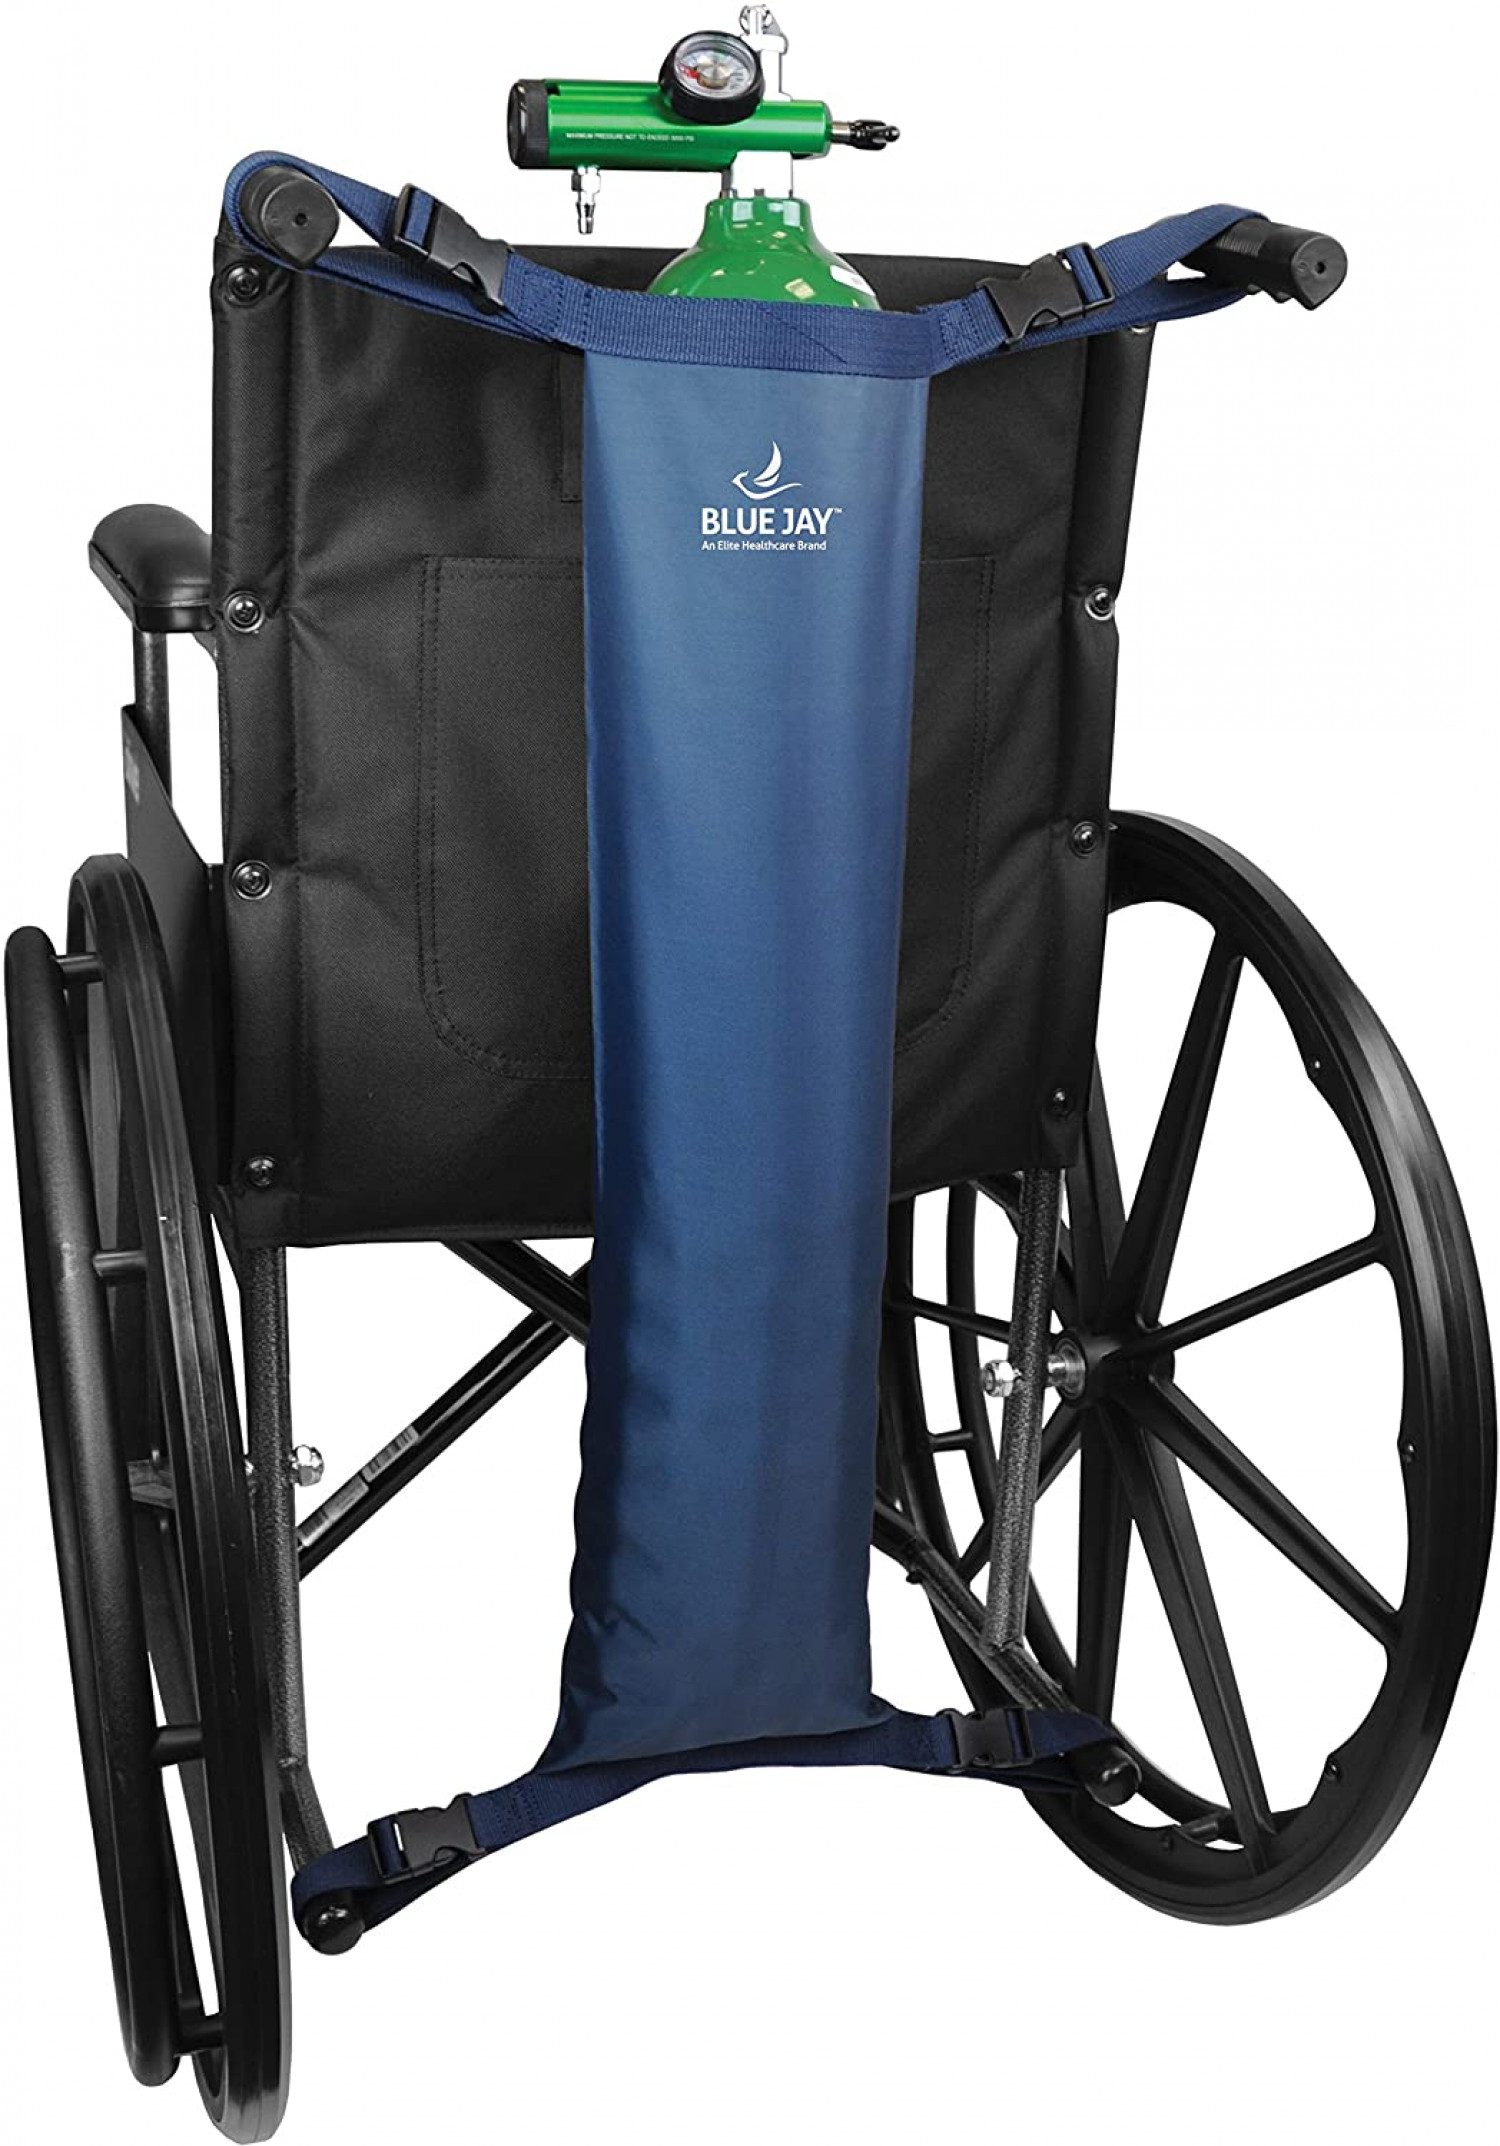 Oxygen Tank for Wheelchairs - Suits Most Wheelchairs - Adjustable & Easy to Install Infographic